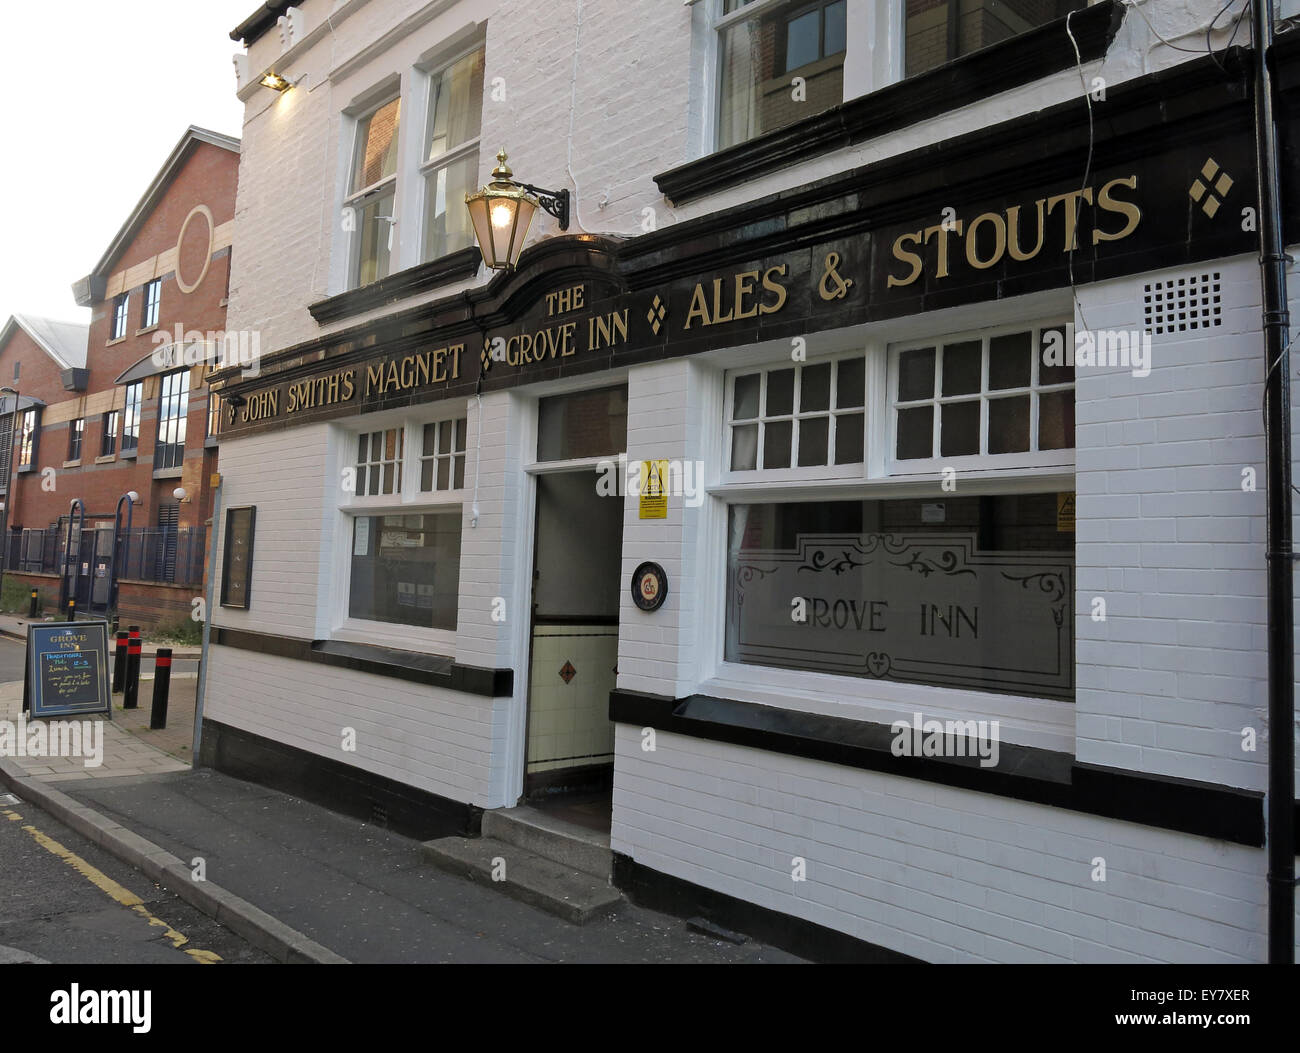 real,ale,CAMRA,bar,drink,drinkers,traditional,history,historic,Grove,Inn,Pub,Back,Row,West,Yorkshire,England,UK,English,GB,Great,Britain,British,city,centre,granary,John,Smiths,Magnet,Ales,LS115PL,LS11 5PL,front,entrance,door,Real Ale,Old Pub,John Smiths,Magnet Ales,LS11 5PL,Front Door,GoTonySmith,black,white,bars,pubs,public,house,Buy Pictures of,Buy Images Of,Public House